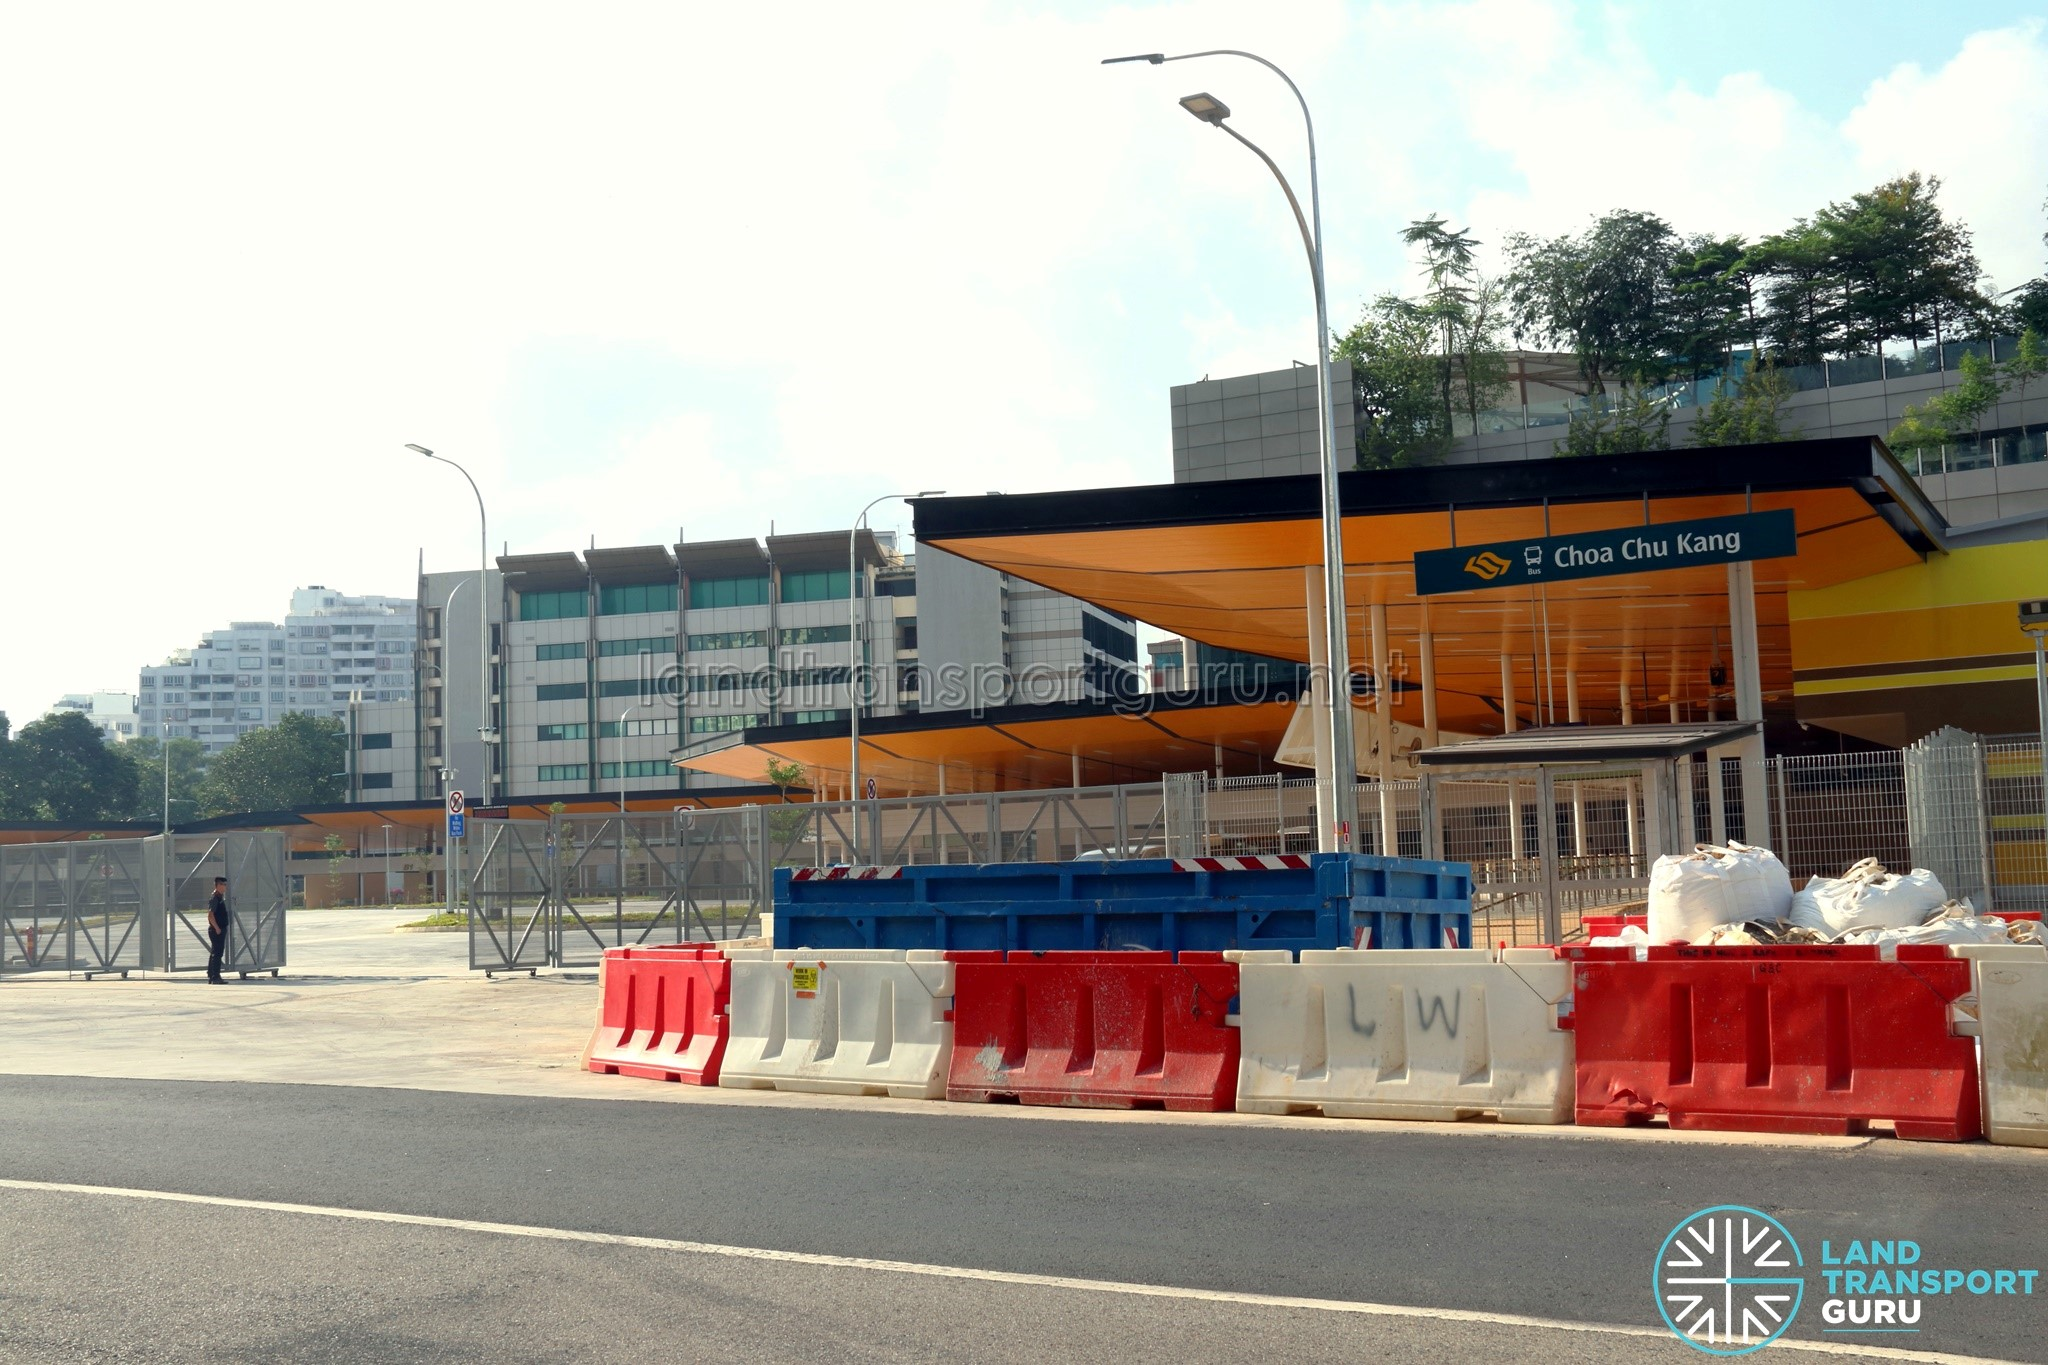 Choa Chu Kang Temporary Bus Interchange - Vehicle Egress